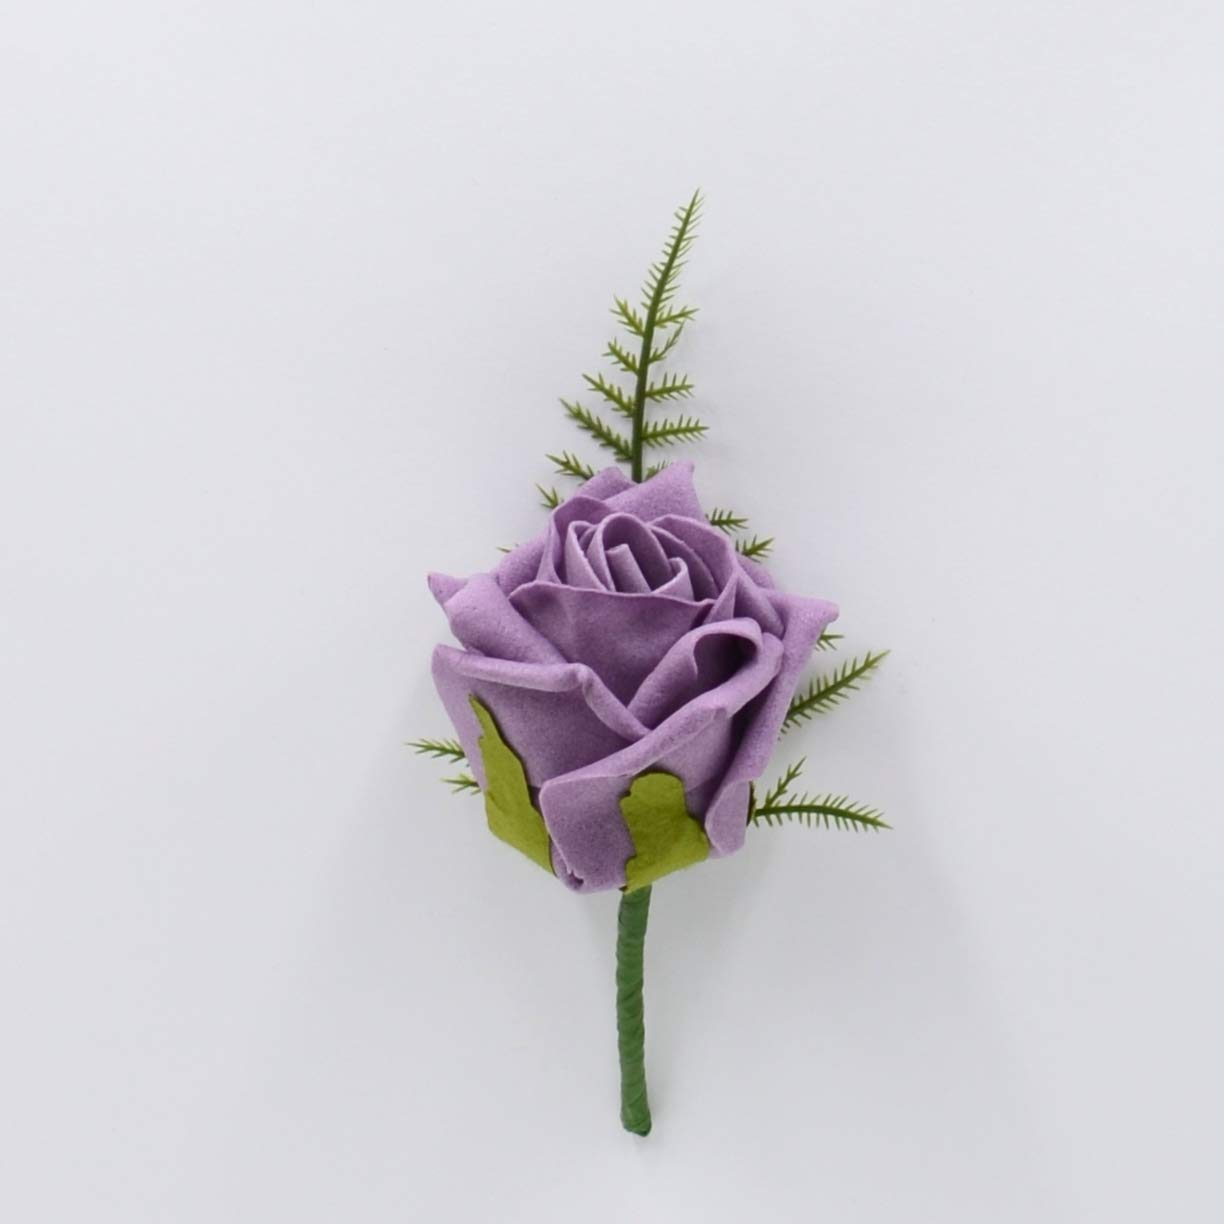 Artificial Wedding Flowers Hand-Made by Petals Polly, Foam Rose Buttonhole in Lavender PETALS POLLY FLOWERS